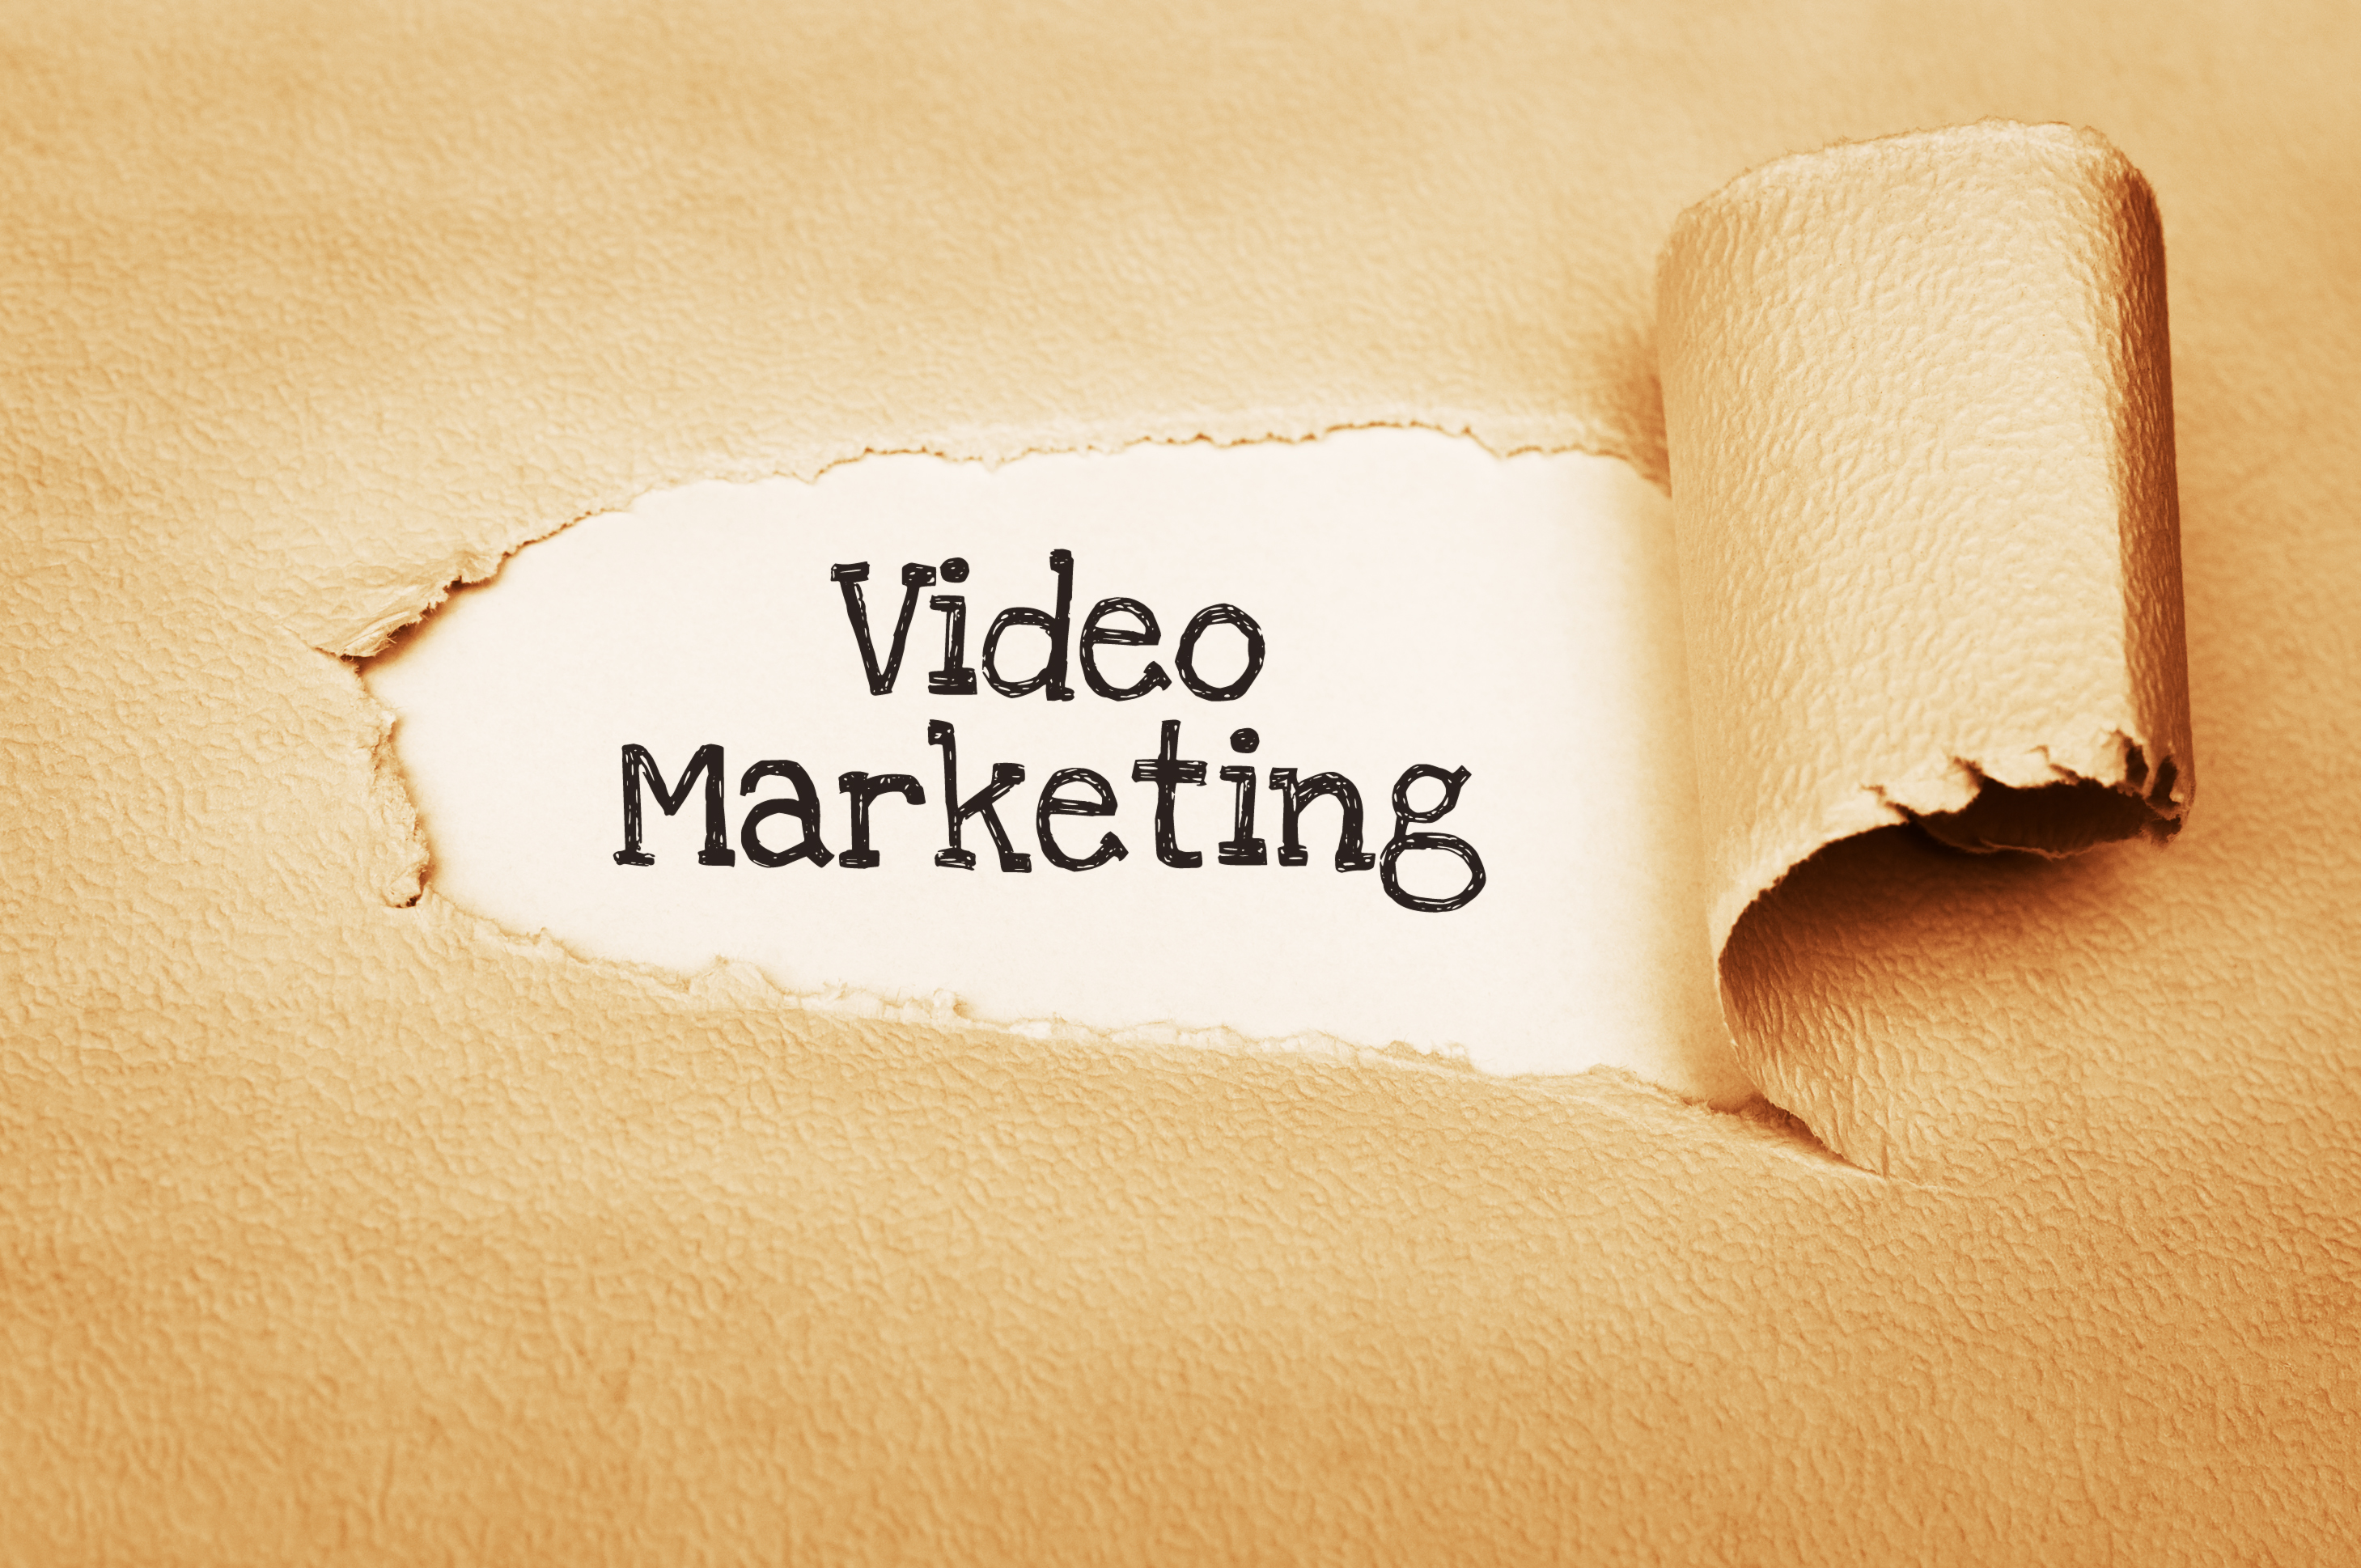 Video Marketing Concept. Written behind a torn paper